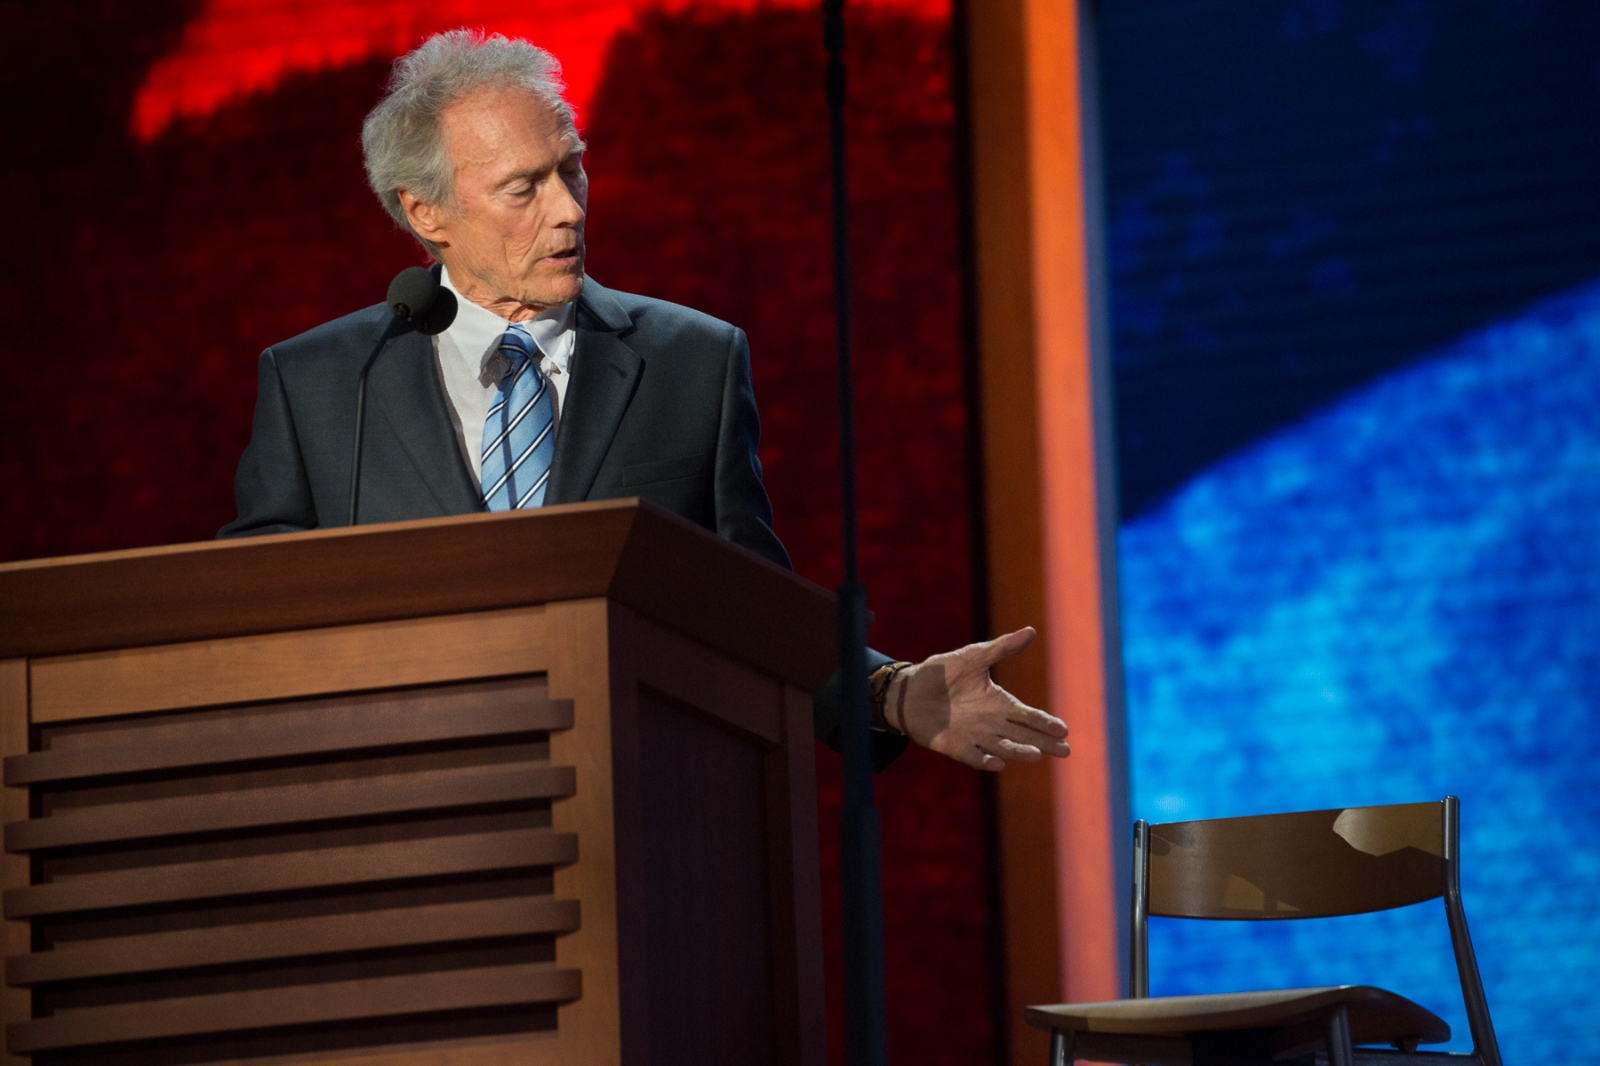 Actor Clint Eastwood talks to an empty chair during the 2012 Republican National Convention.